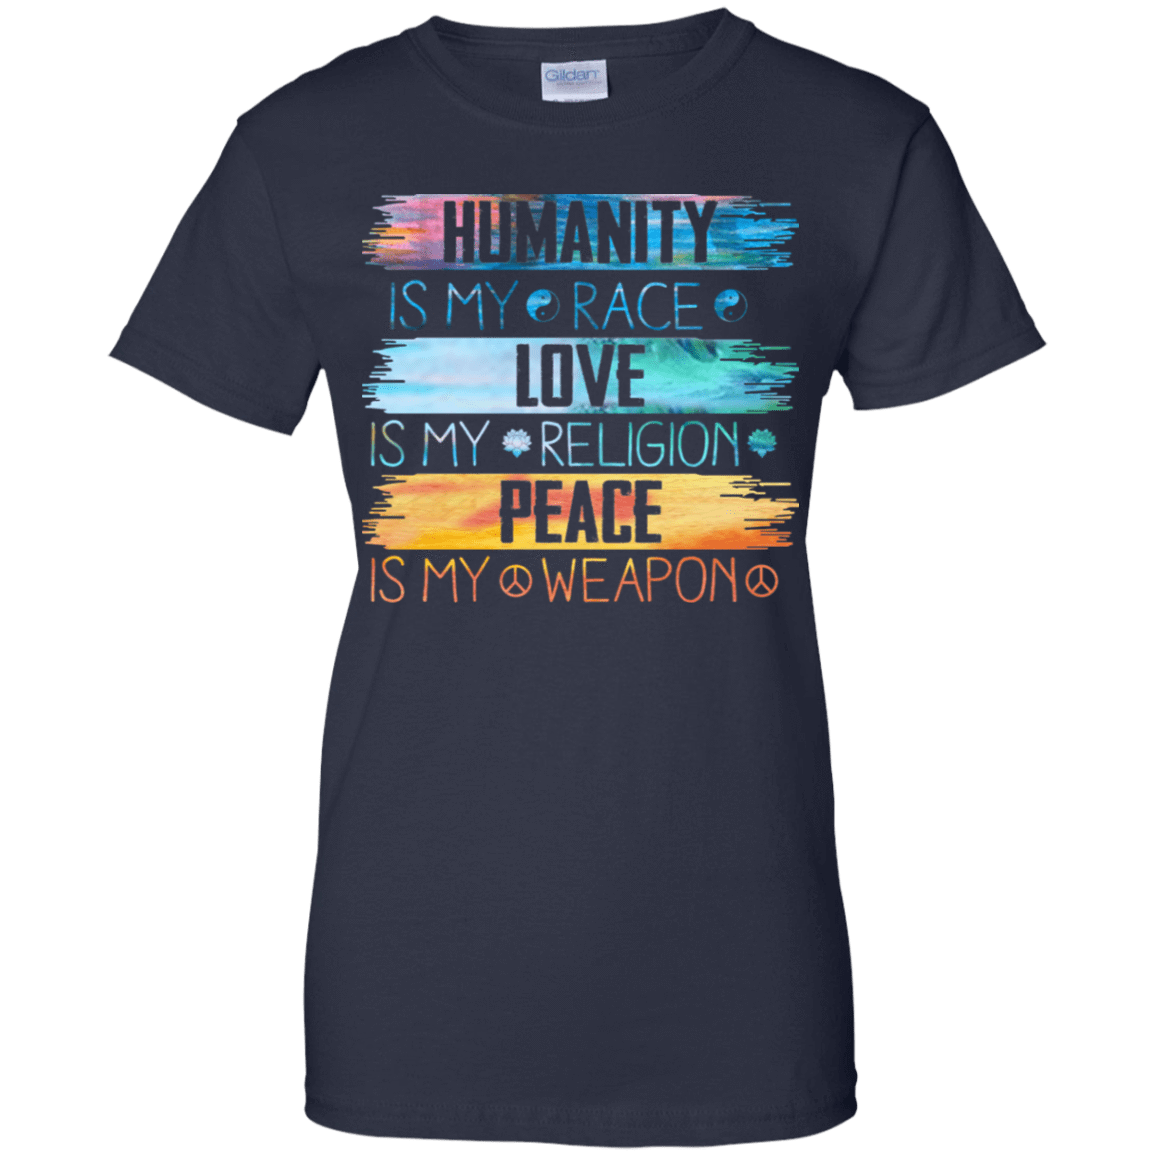 Humanity Is My Race Love Is My Religion Peace Is My Weapon 939-9259-73426432-44765 - Tee Ript